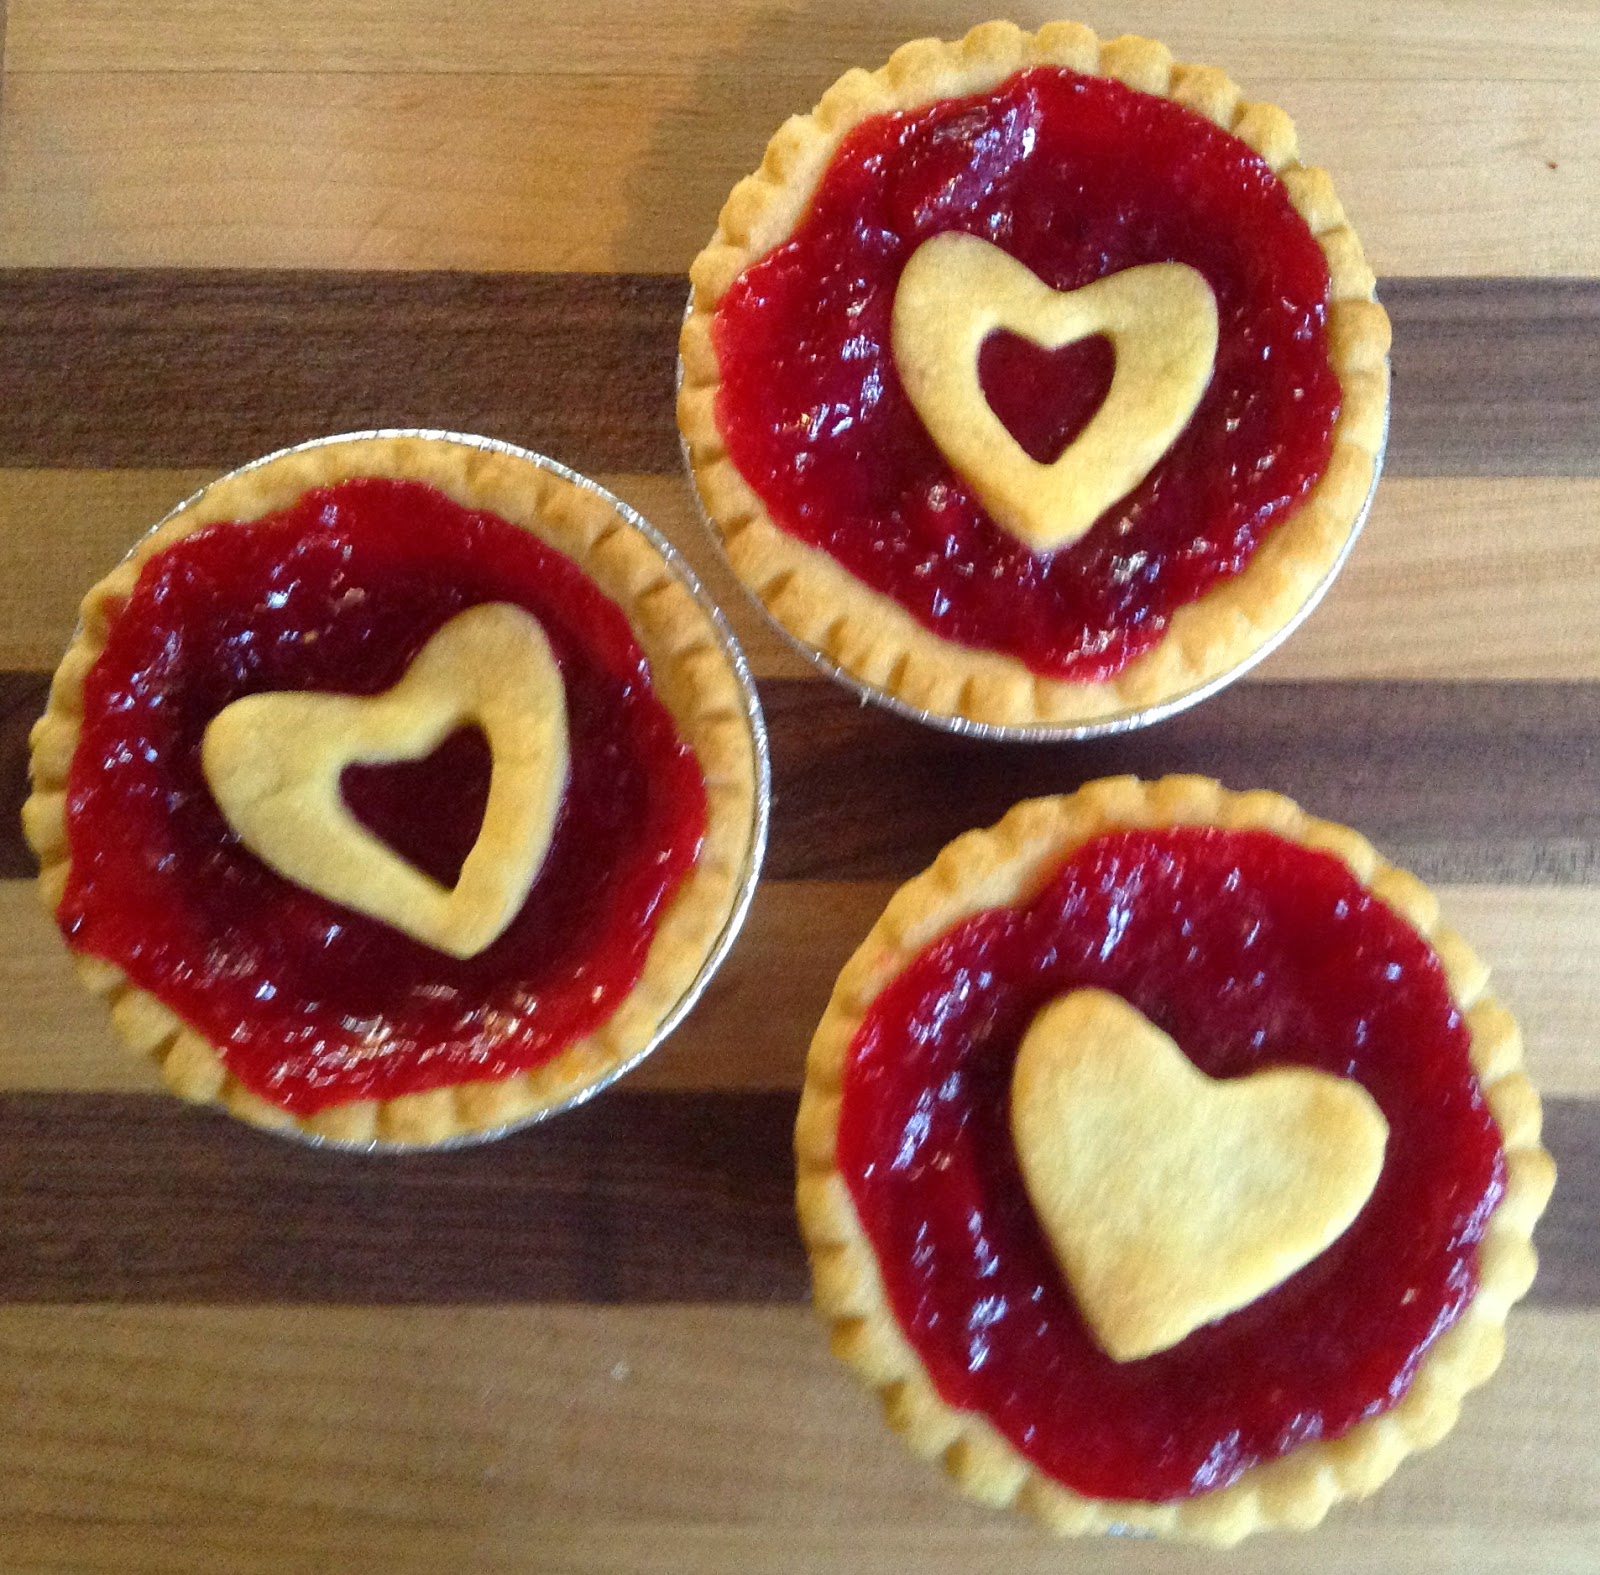 Cranberry Tarts for Thanksgiving